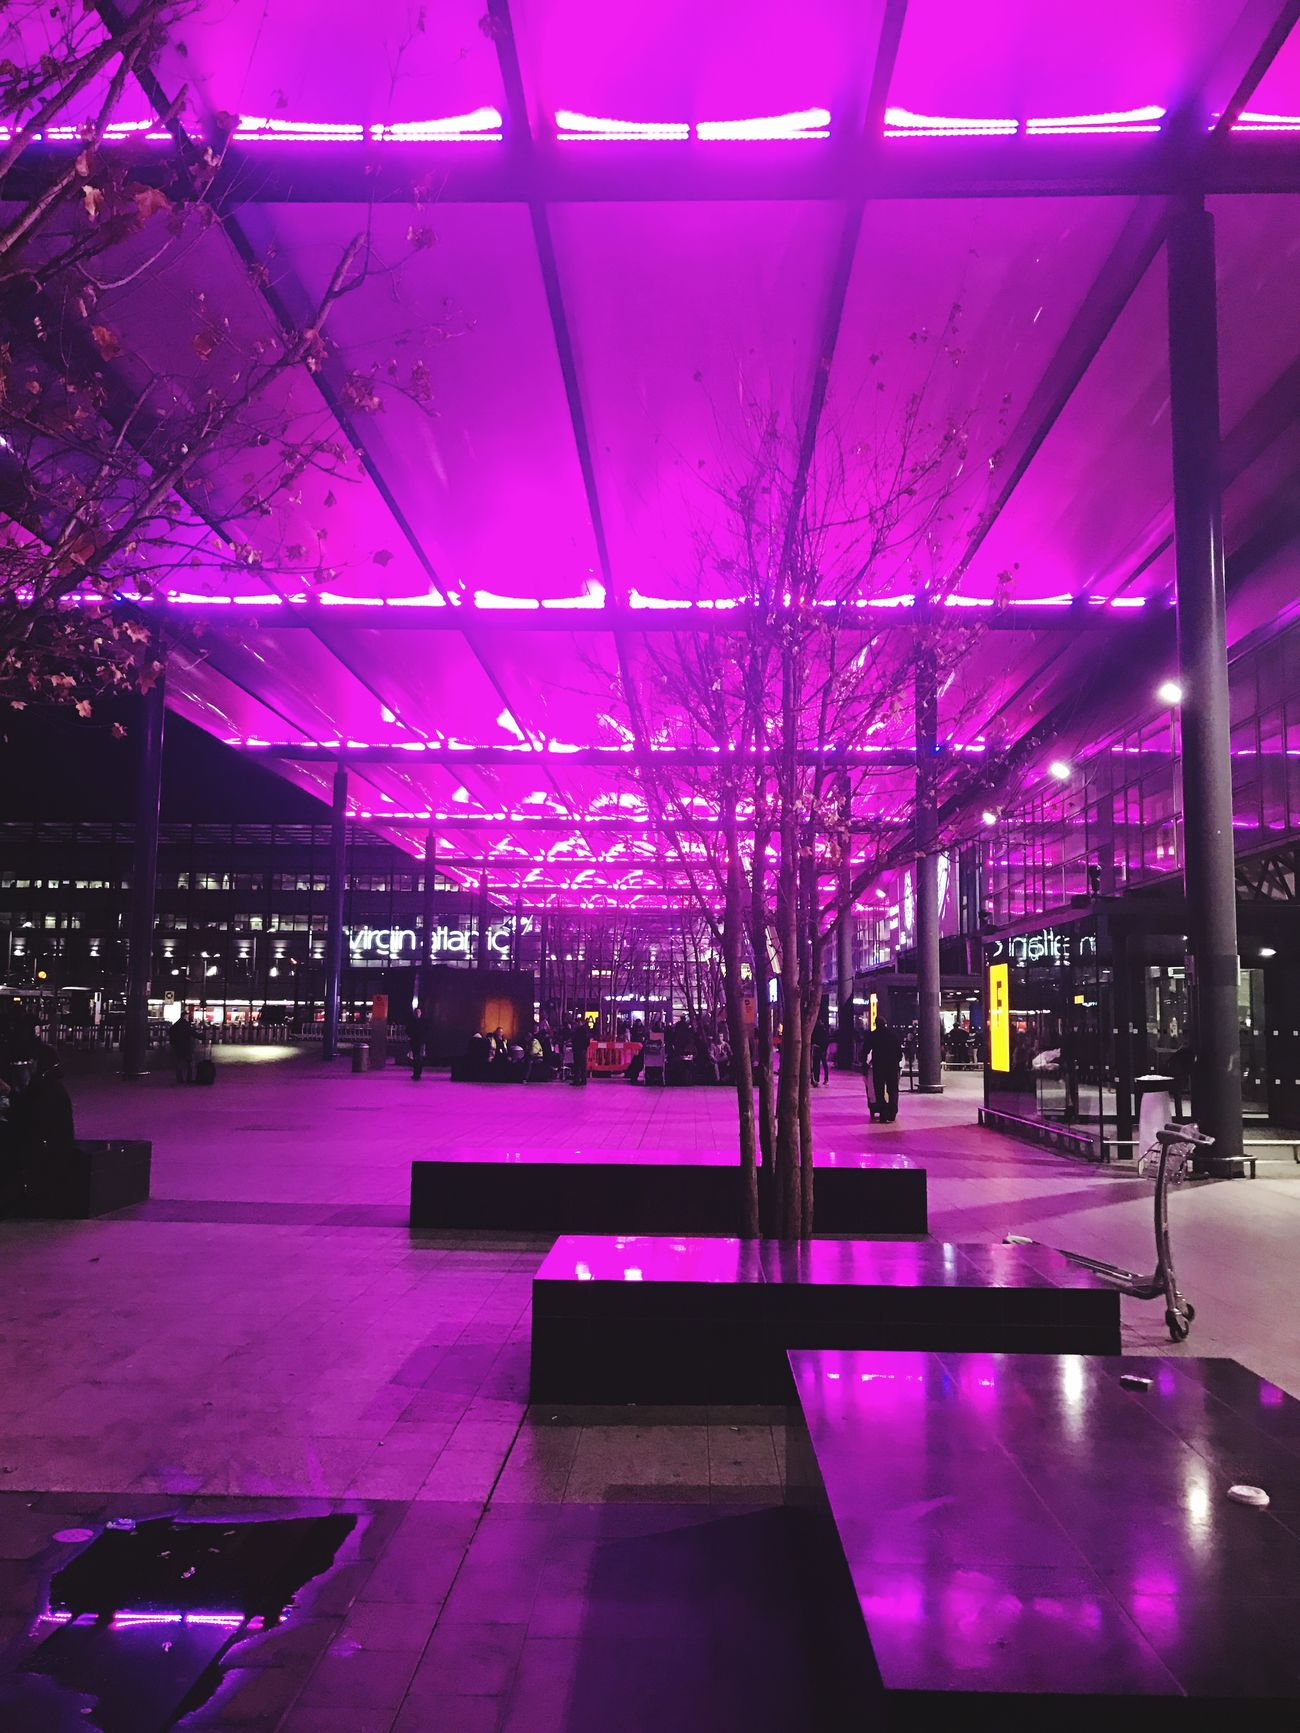 Purple Illuminated Built Structure No People Architecture Night Architecture Lighting Equipment From My Point Of View City Light View Capture The Moment Travel Destinations Creativity stunning